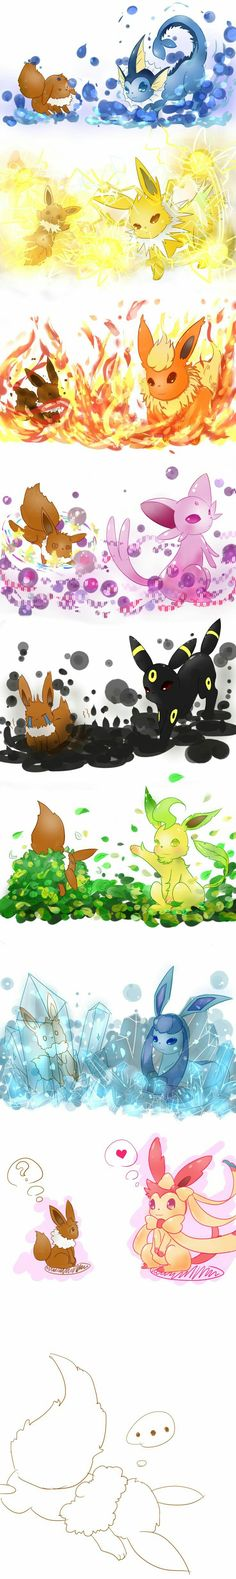 Eevee exposed to the elements xD Poor thing. There is vaporeon jolteon flareon Pokemon Comics, Pokemon Go, Fotos Do Pokemon, Pikachu, Pokemon Pins, Pokemon Funny, Cool Pokemon, Pokemon Especial, Pokemon Mignon